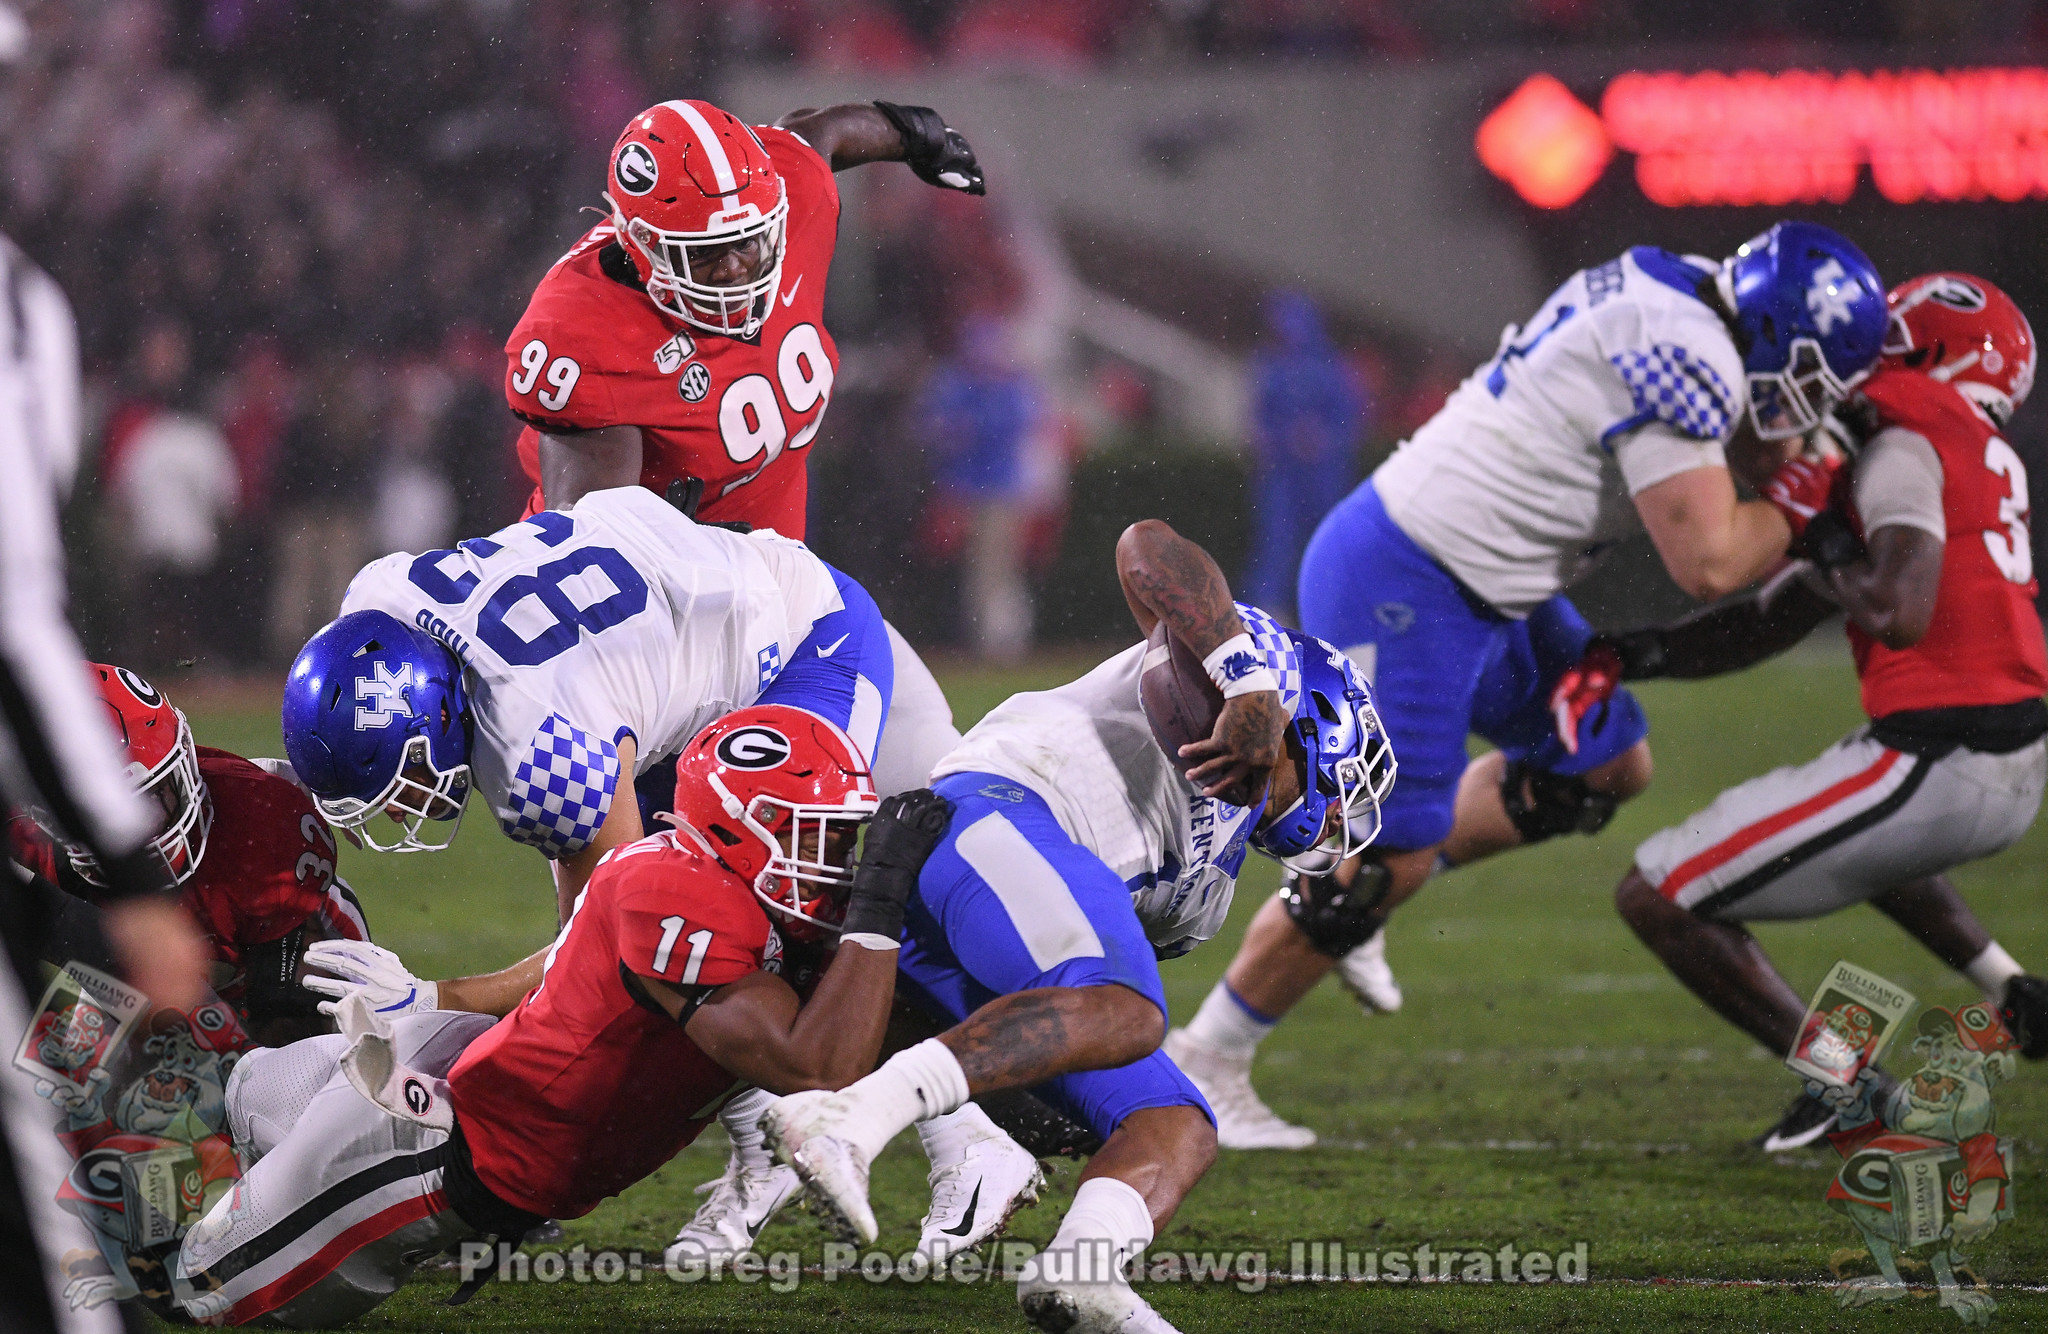 Jermaine Johnson (11) sacks Kentucky quarterback Lynn Bowden Jr. - Georgia vs. Kentucky 2019 - Second Quarter - October 19, 2019